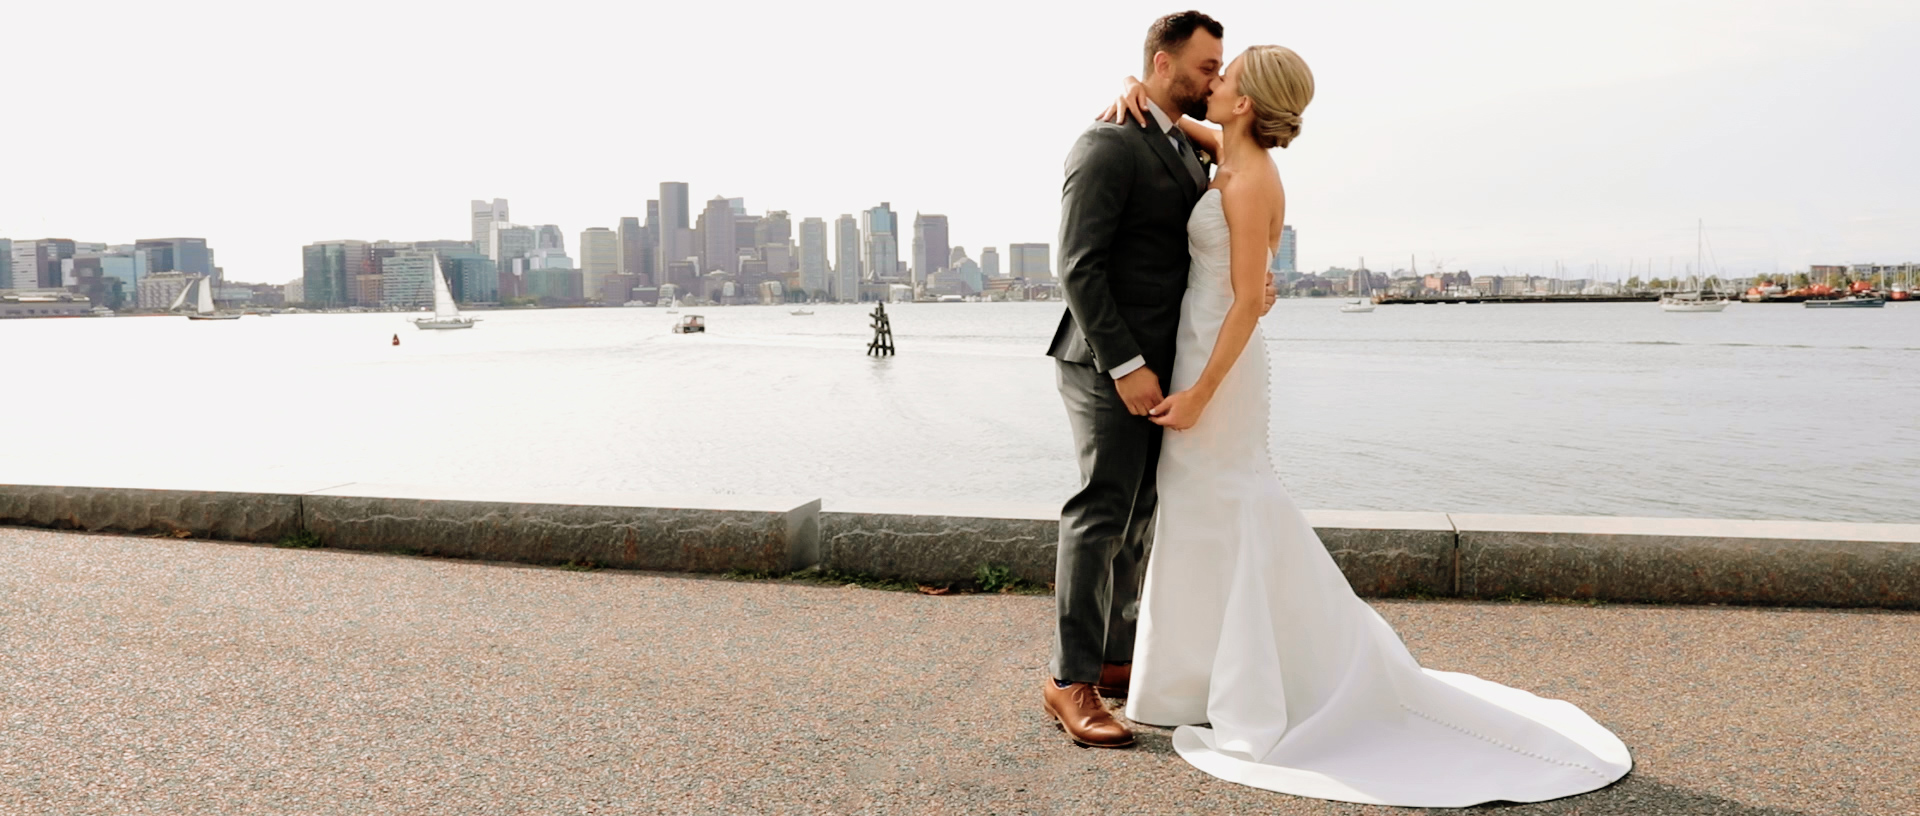 Christina + Joe | Boston, Massachusetts | Hyatt Regency Harborside Boston